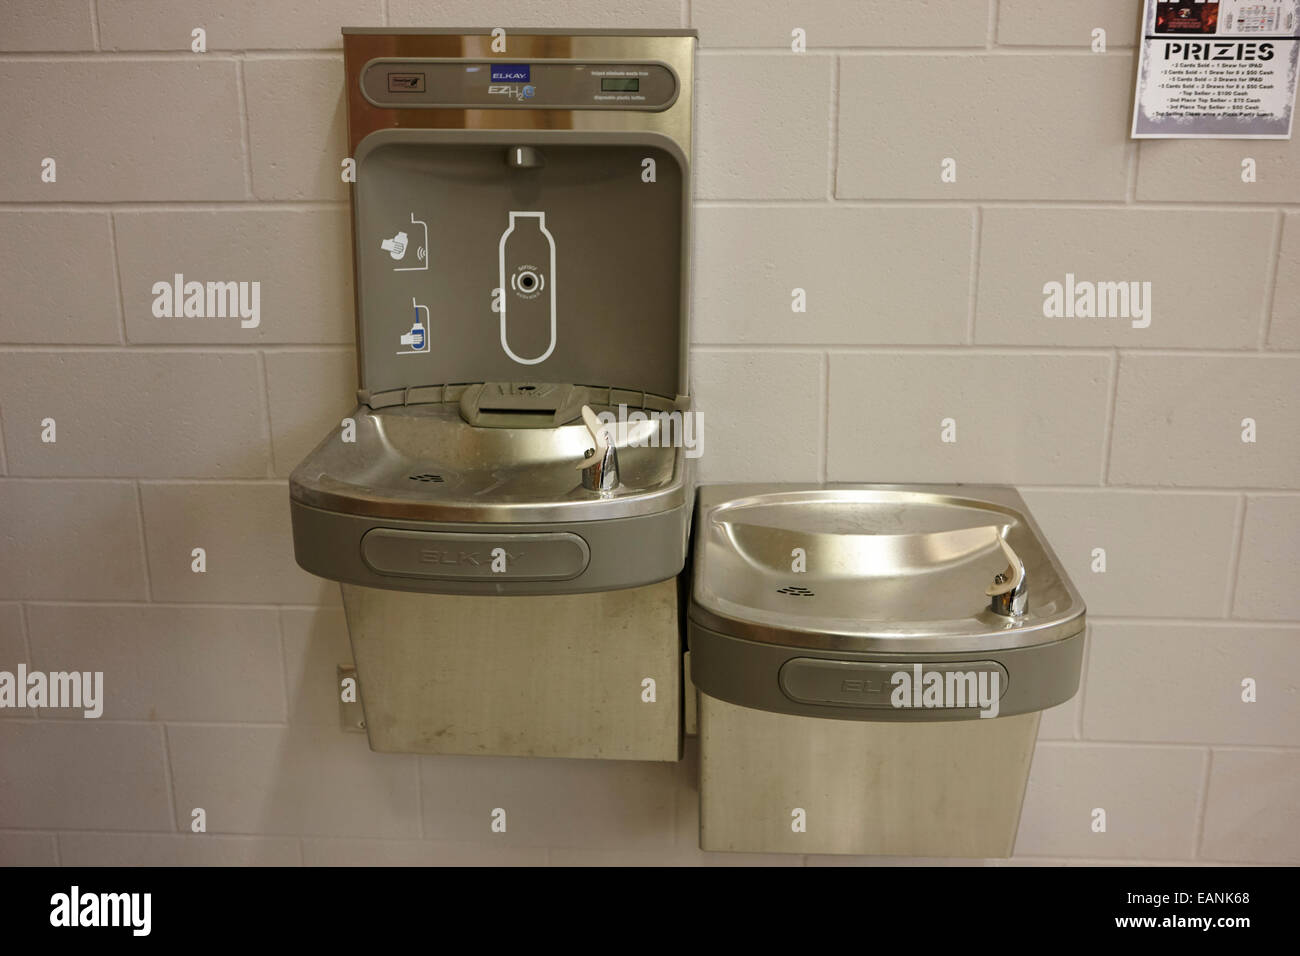 high school water fountain and drinking water bottle fill location - Stock Image